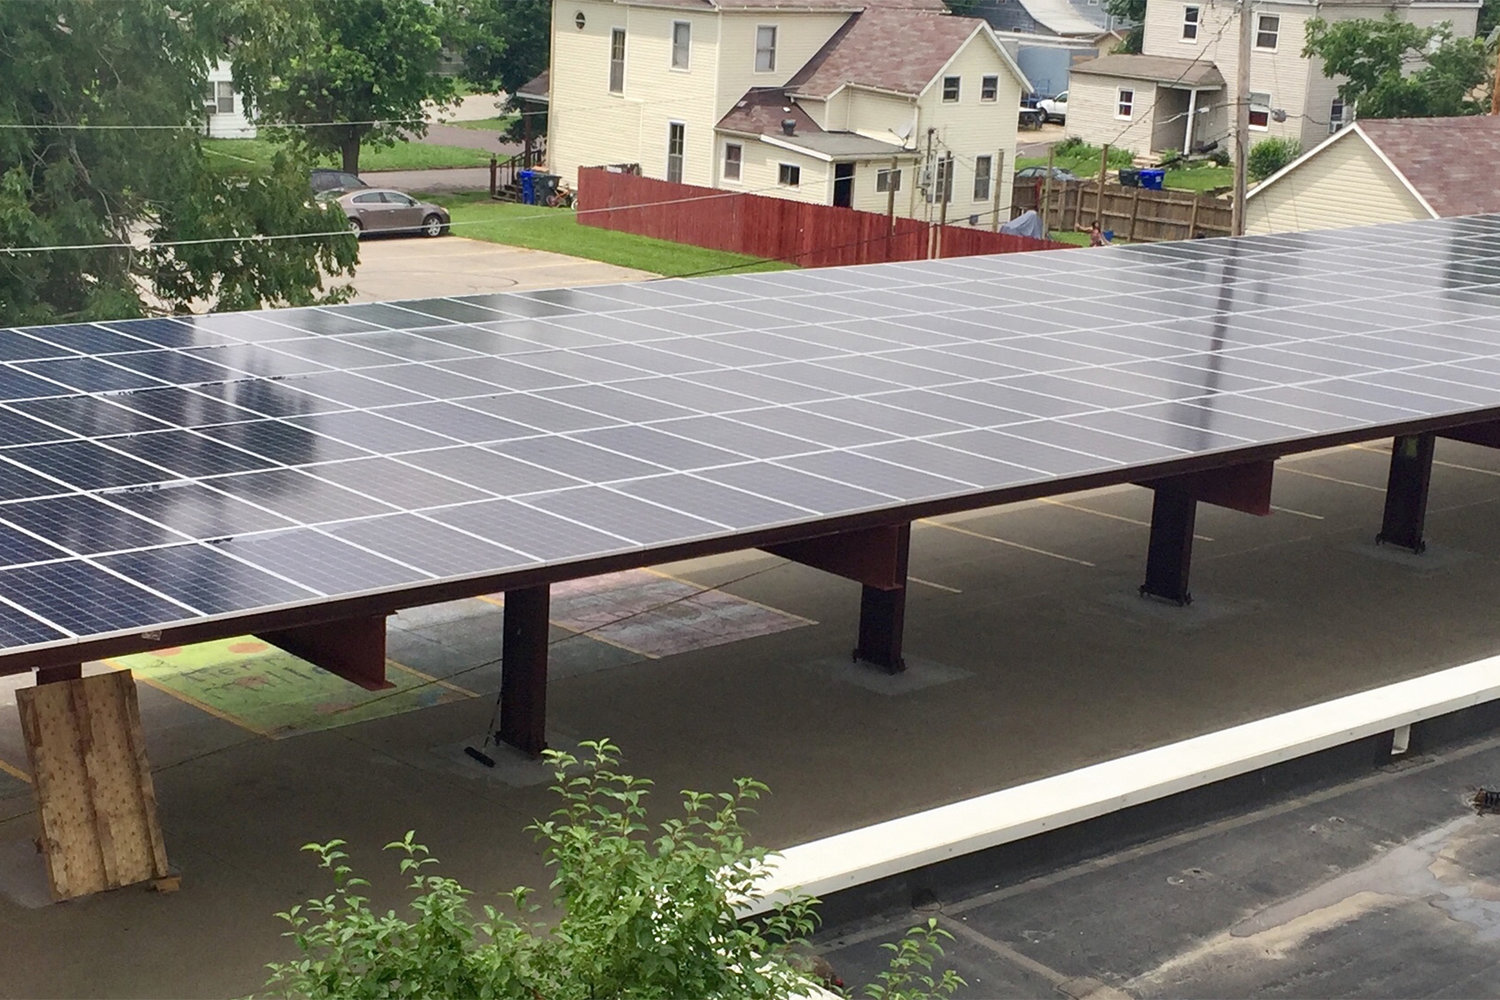 Sacred Heart School in Sedalia is using an array of solar panels to harvest energy from the sun, reaping a cost savings and giving students a chance to learn about science and practical ways of solving problems.